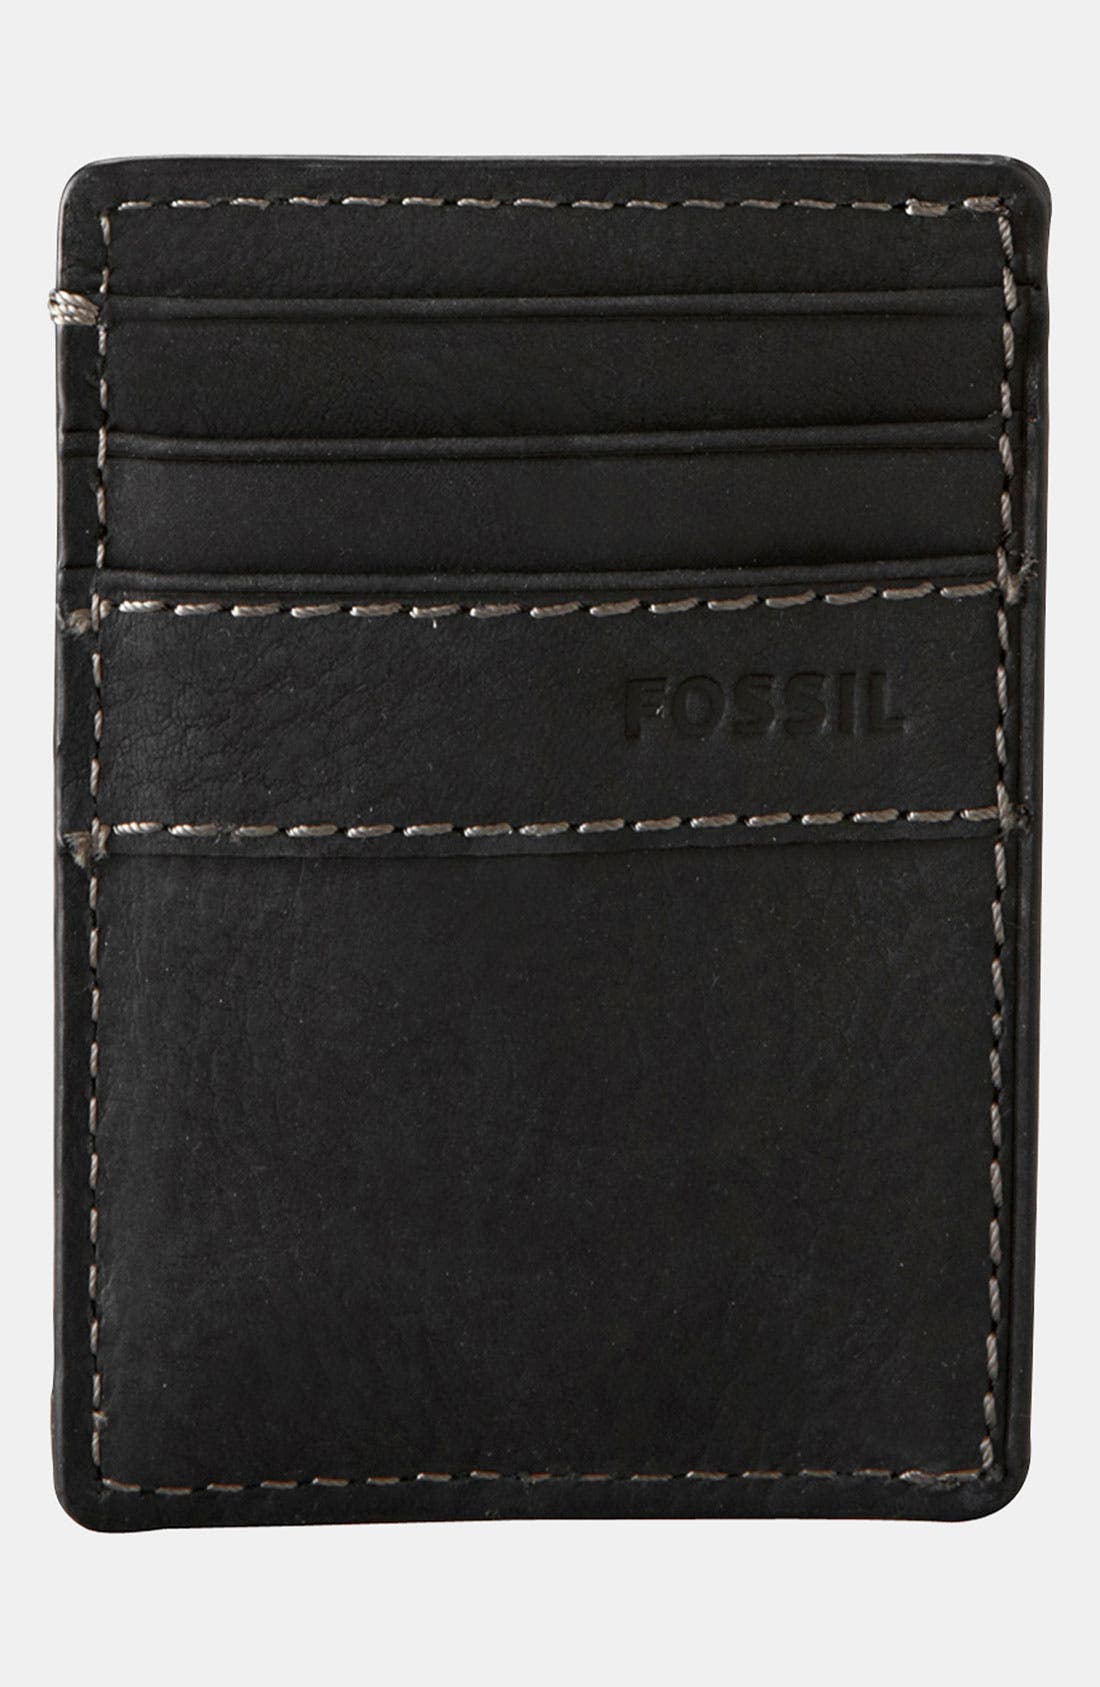 Main Image - Fossil Money Clip Card Case